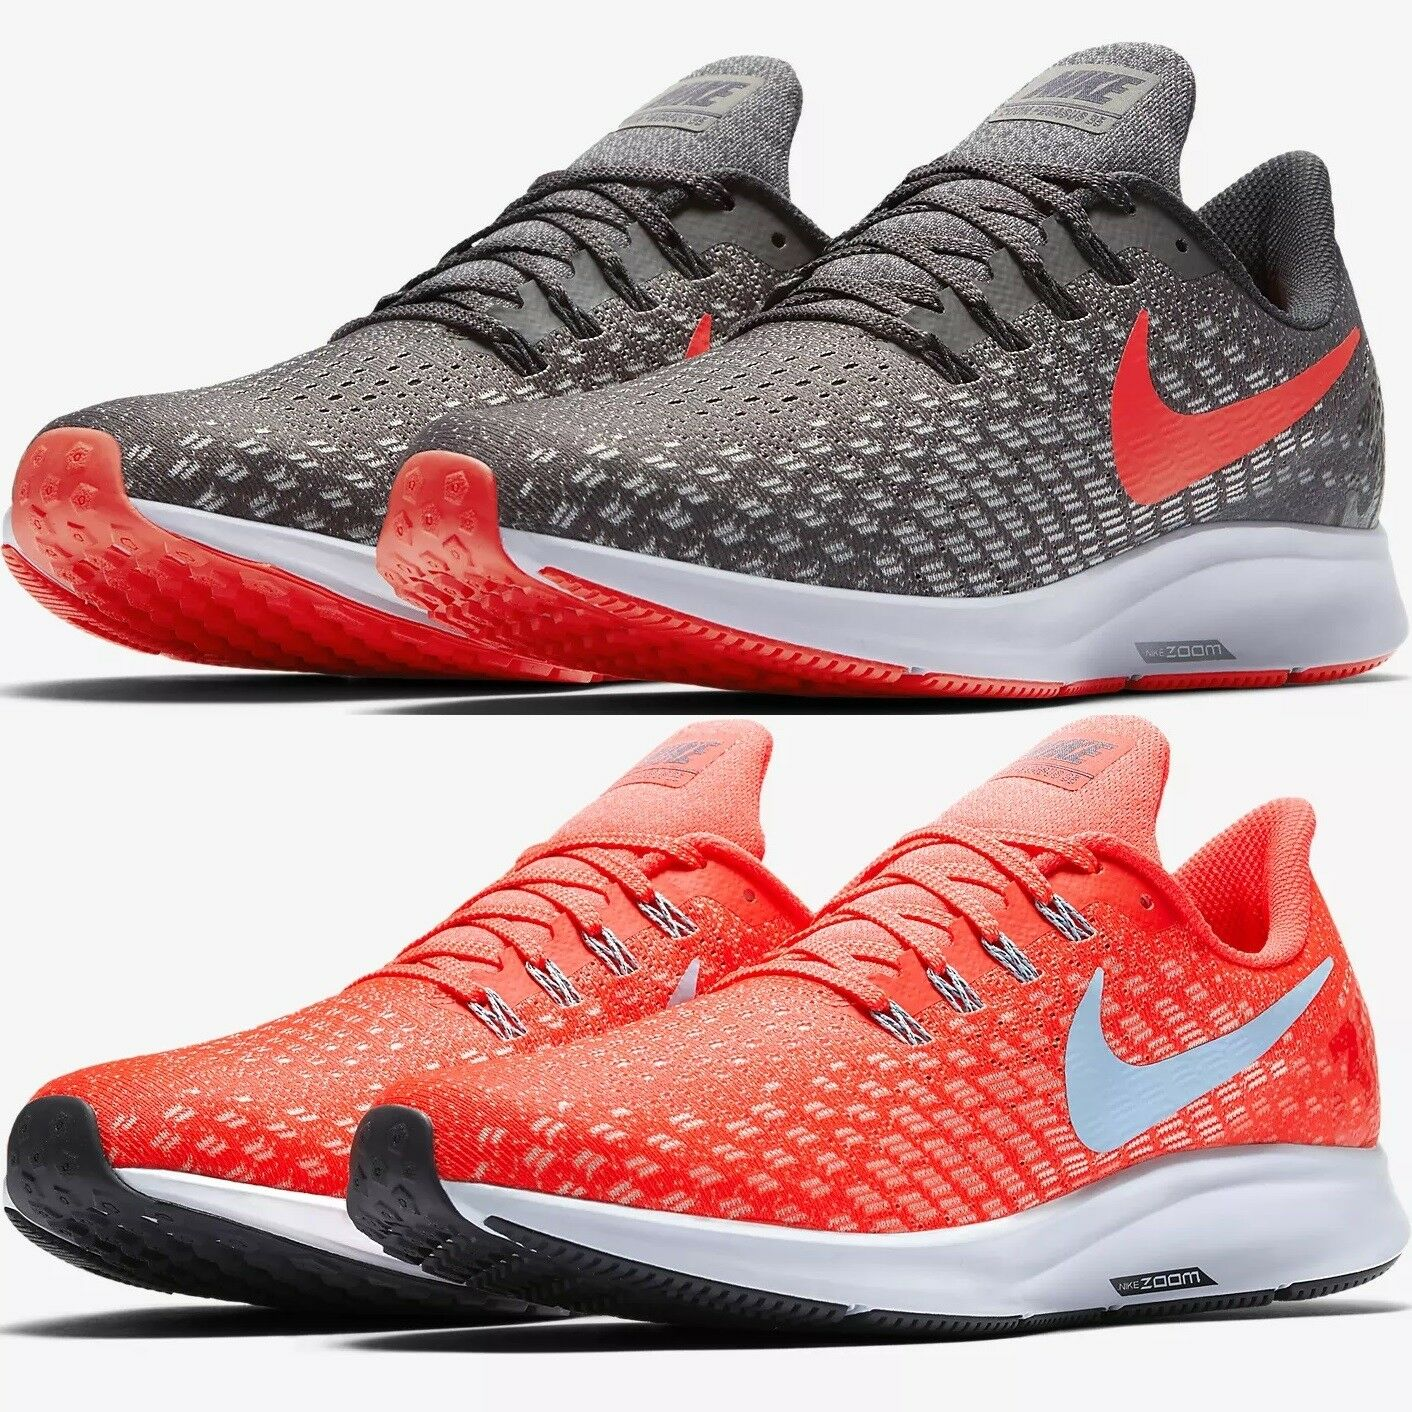 newest b7ae5 fa9a6 promo code for nike pegasus 32 hommes fonctionnement chaussures x10 0c517  84356